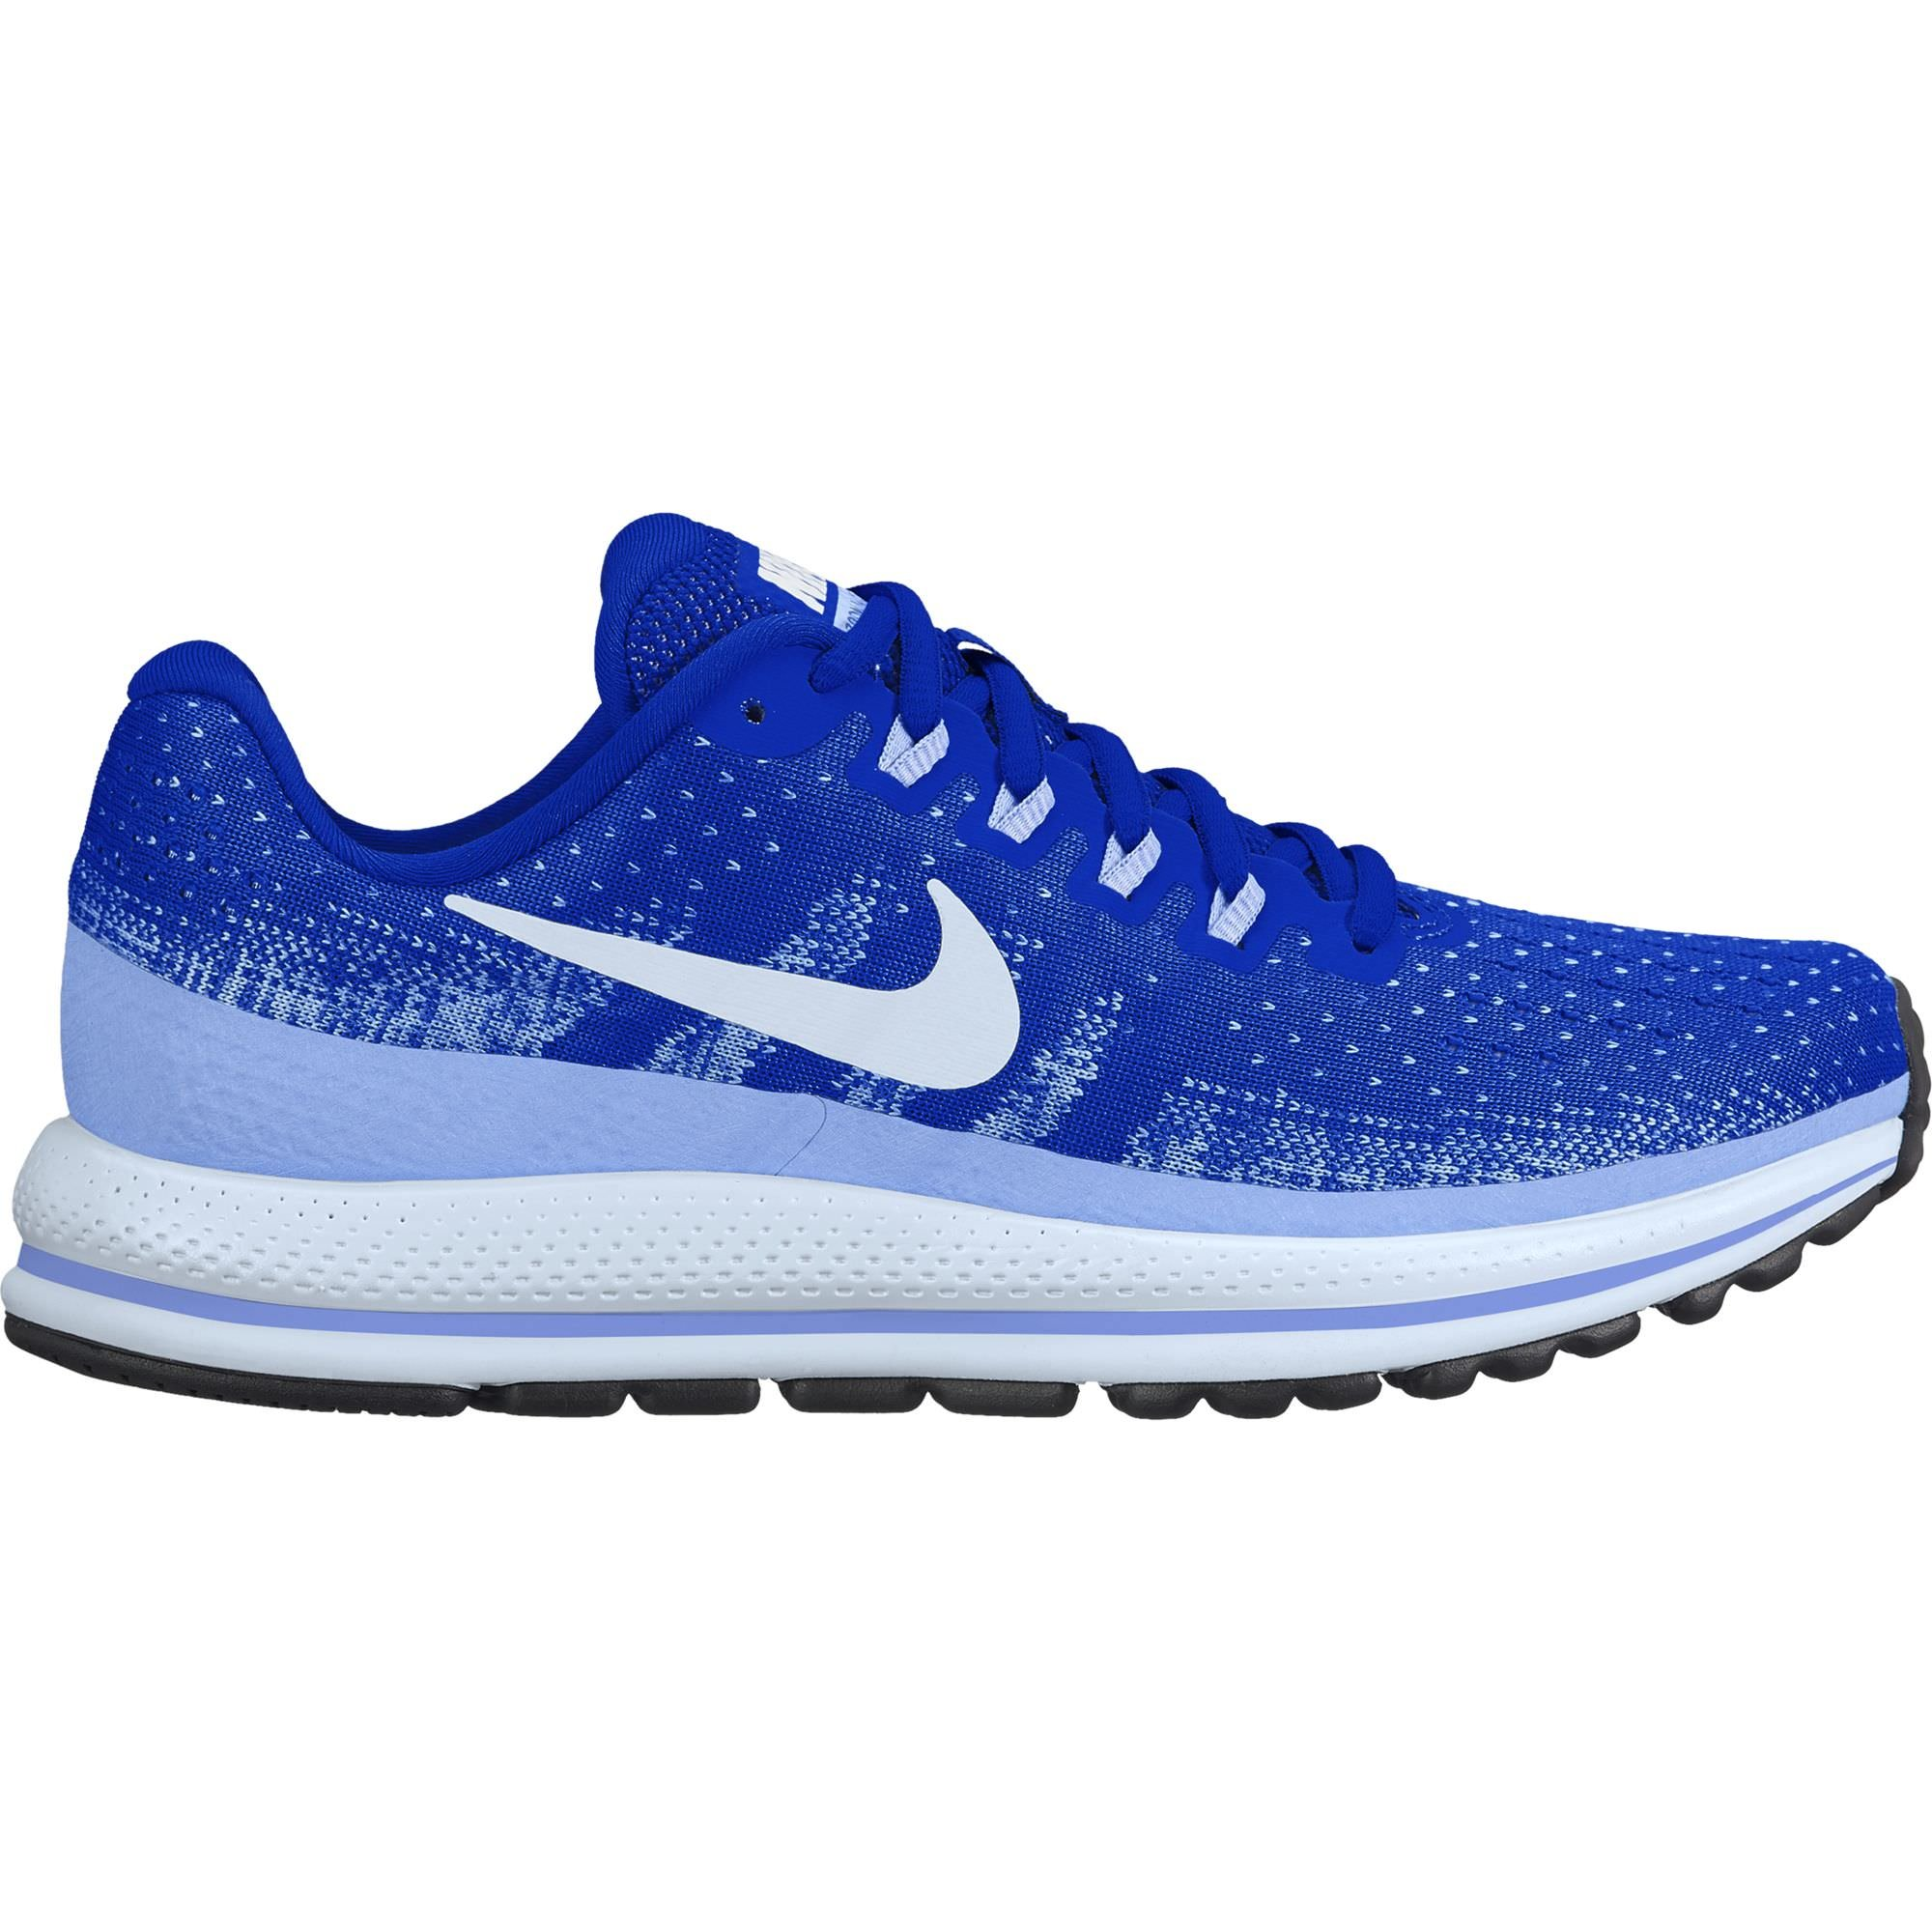 Nike Women's Air Zoom Vomero 13 Running Shoe Racer Blue/Blue Tint-Royal Pulse-White 6.0